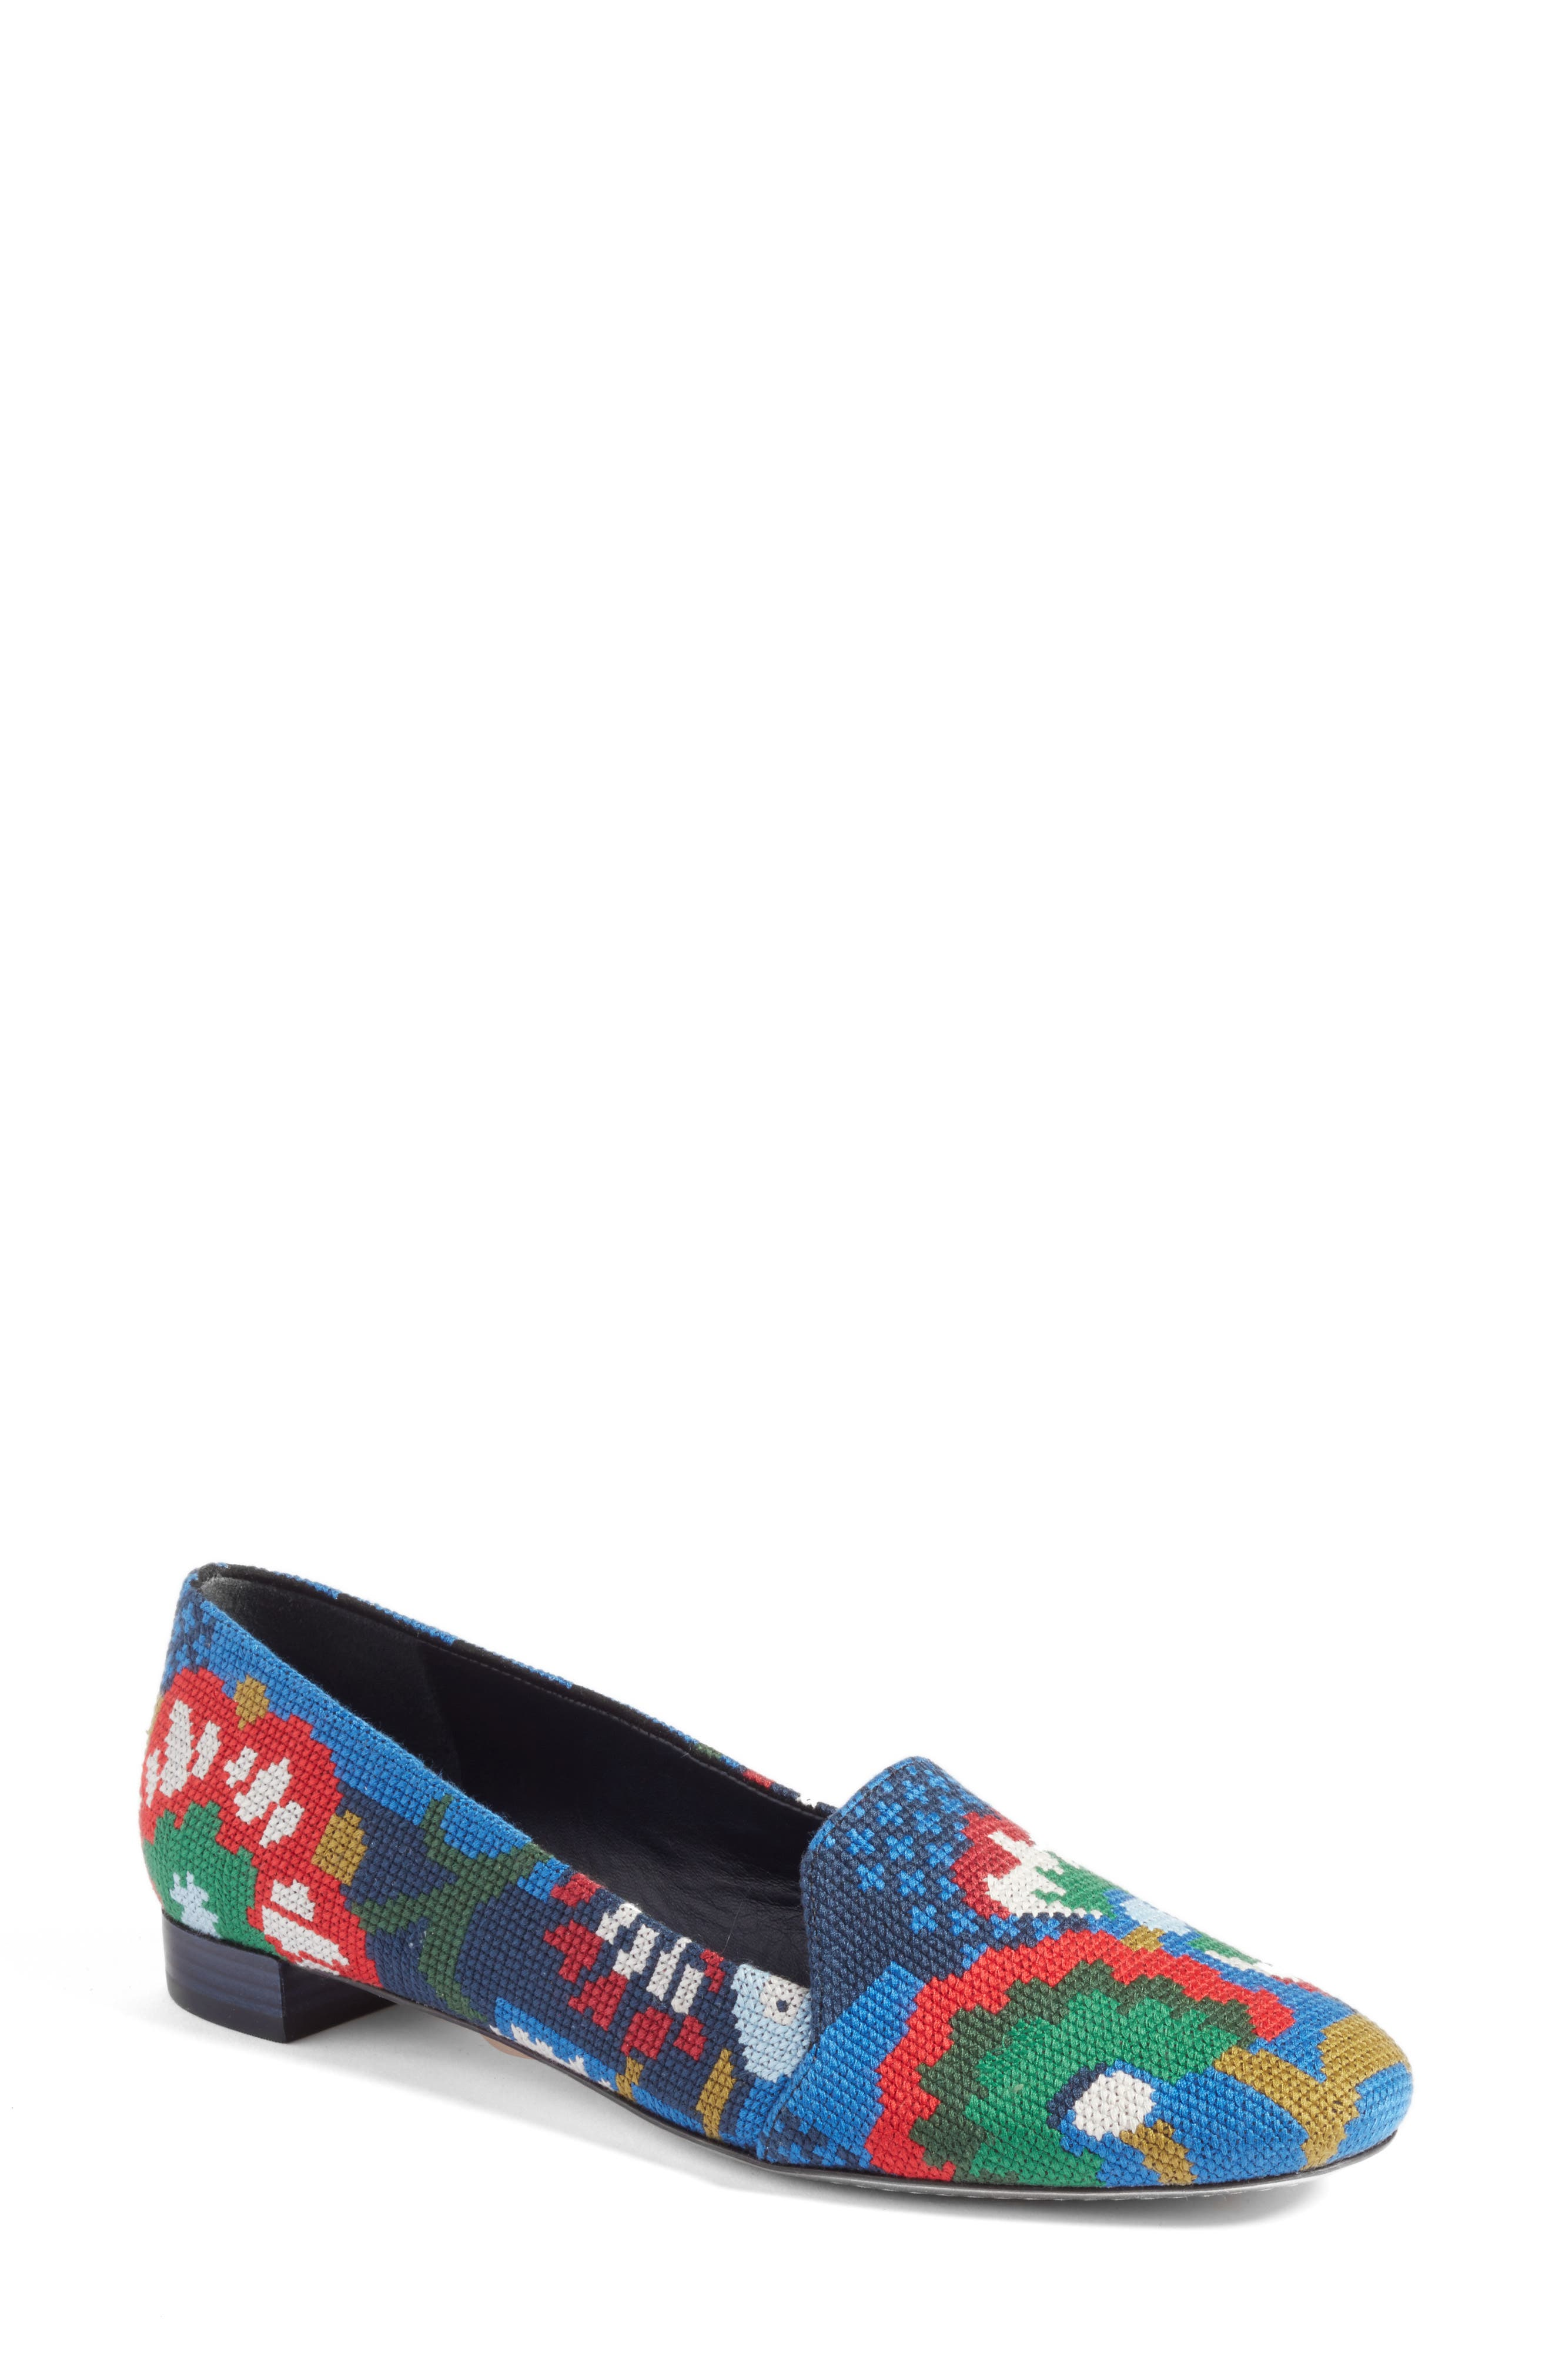 Sadie Floral Cross Stitch Loafer,                         Main,                         color, 478